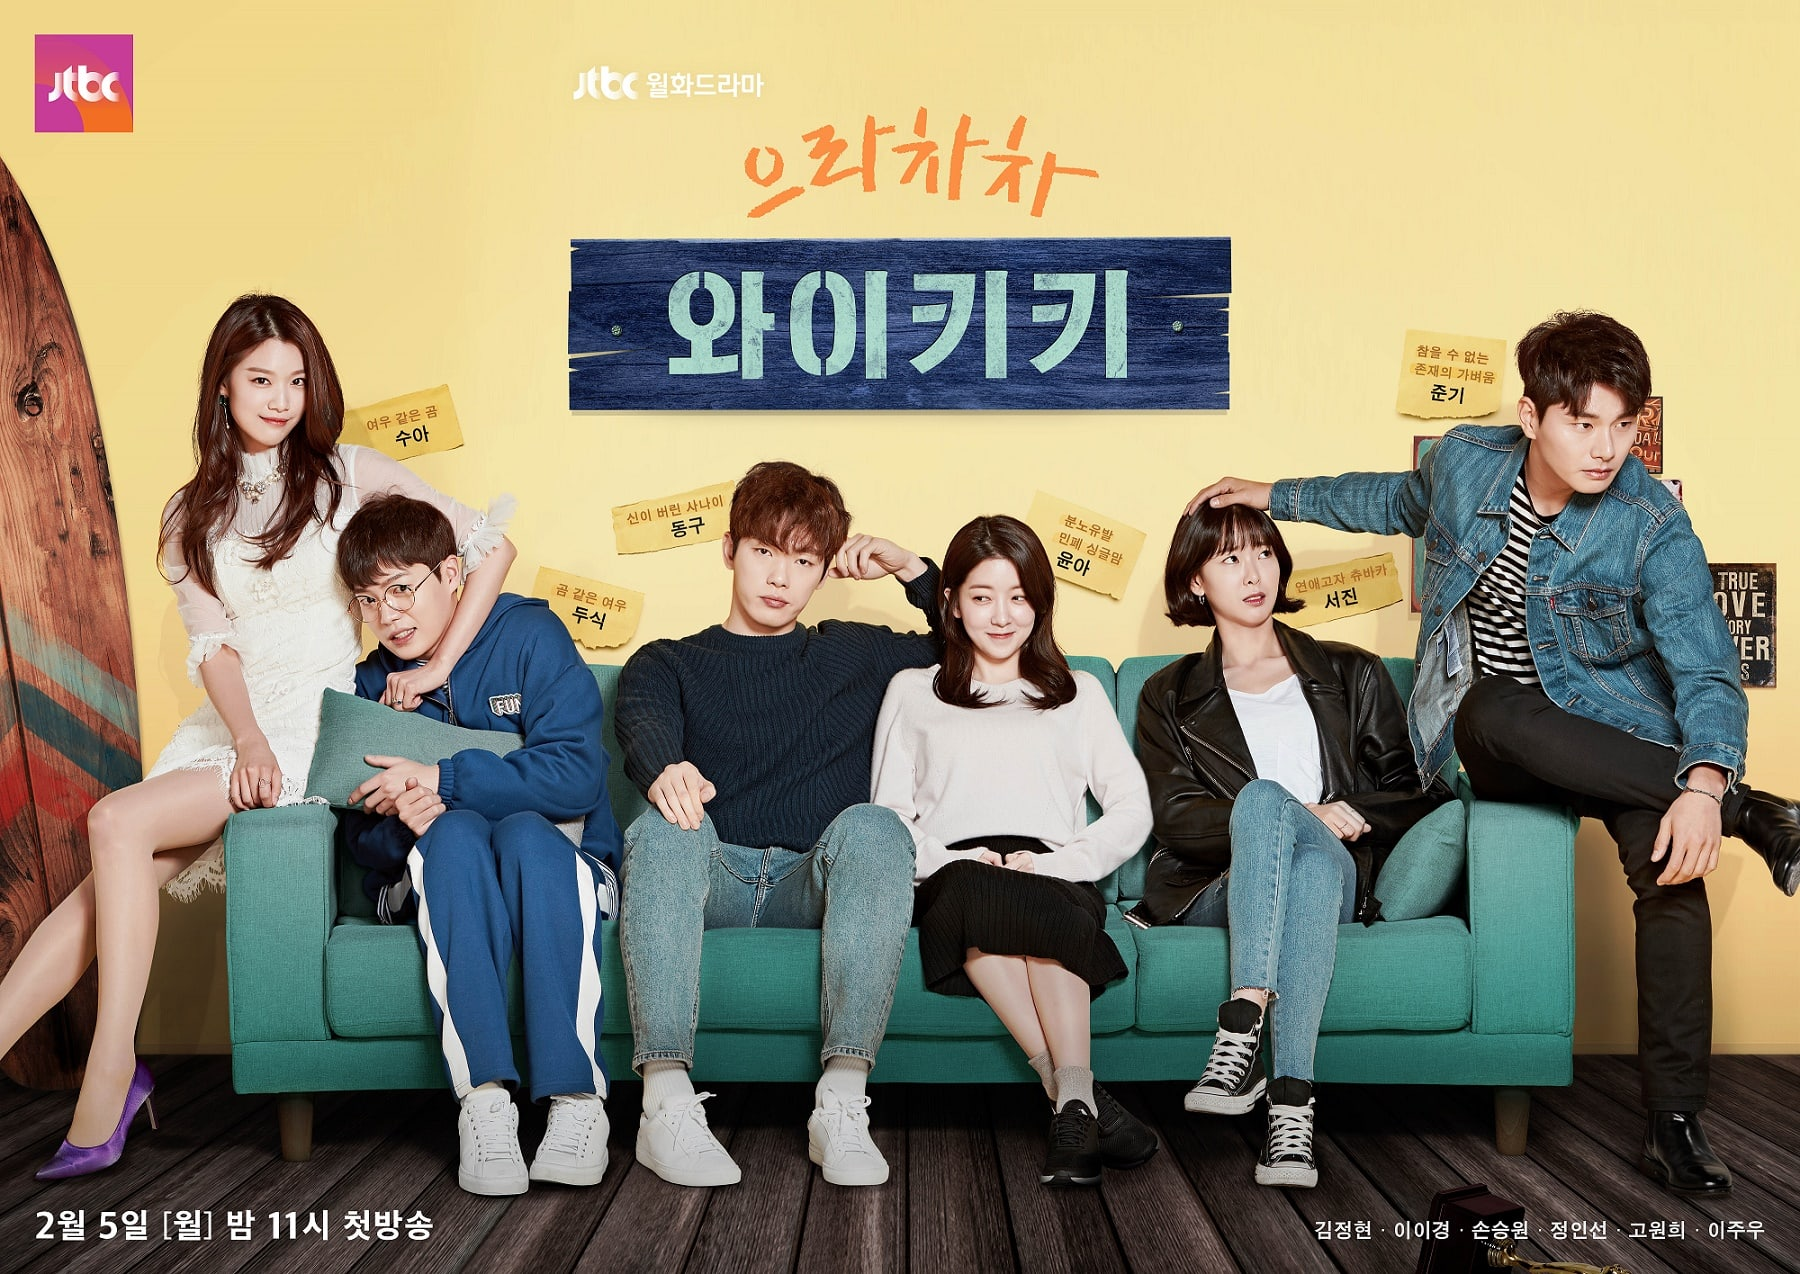 """Waikiki"" Reveals Main Poster With 6 Youthful And Energetic Characters"